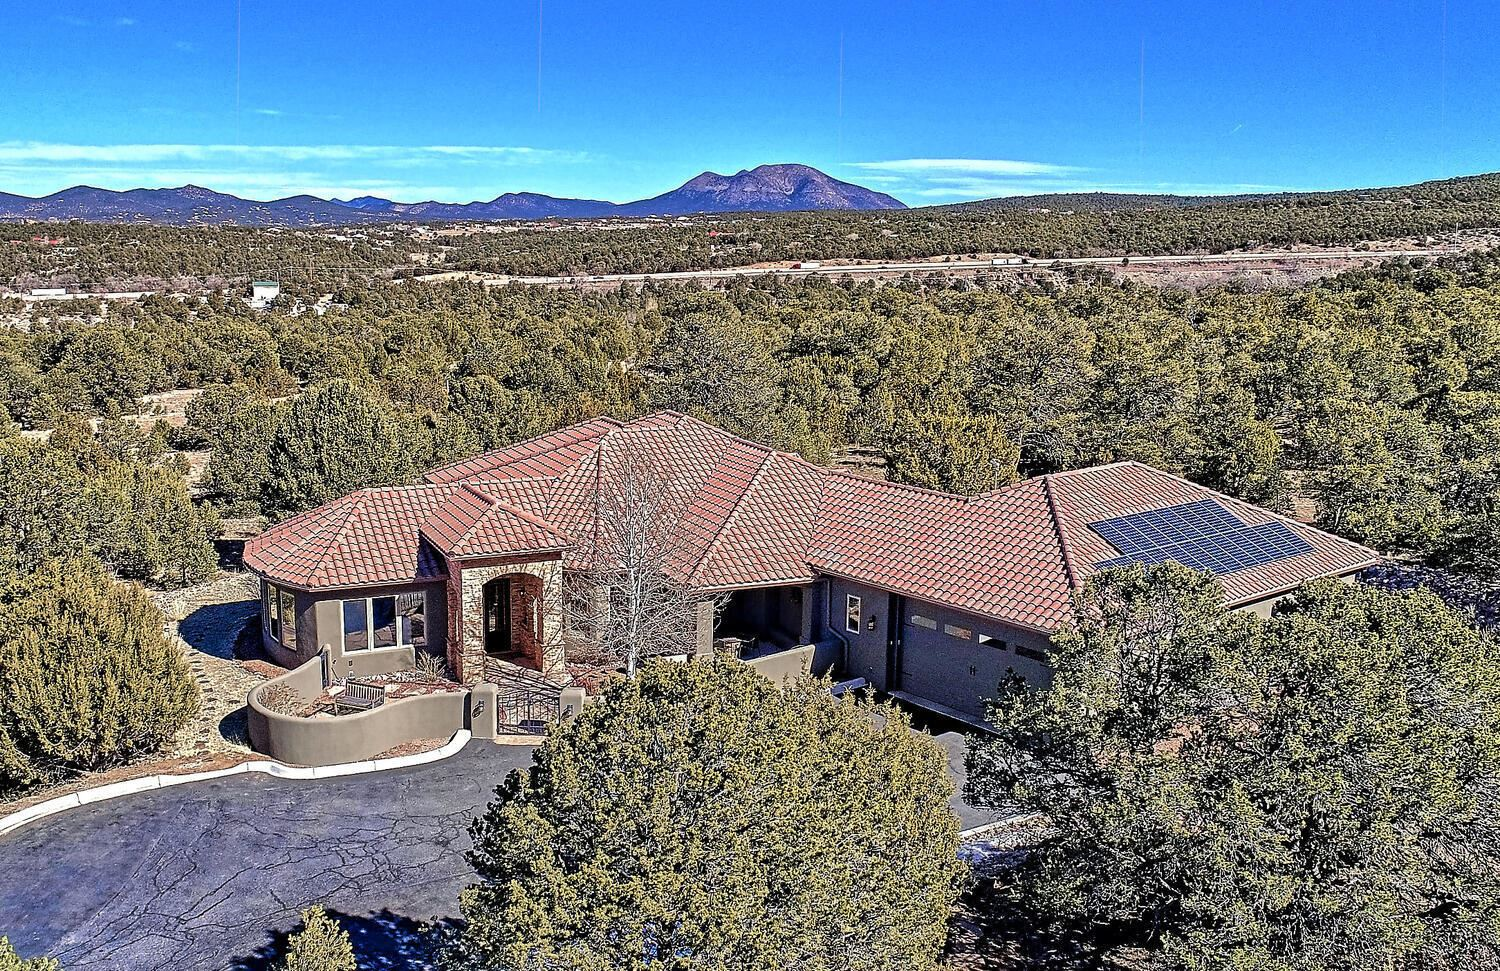 18 COYOTE CANYON Trail, Tijeras, NM 87059 - MLS#: 985512